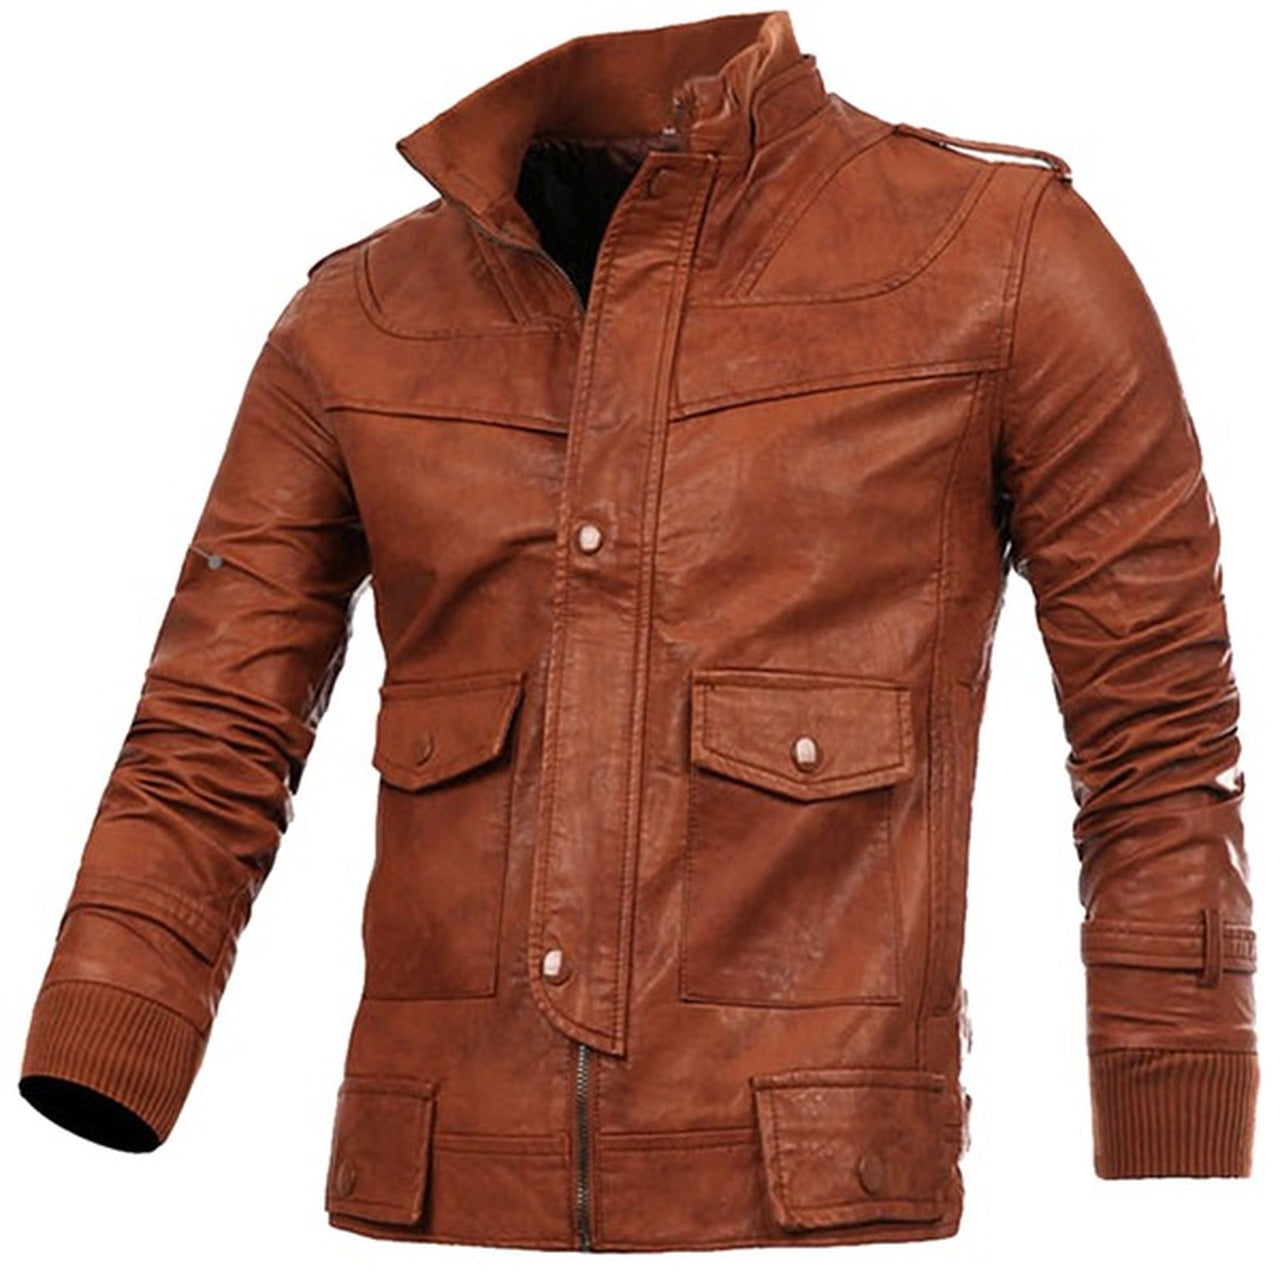 Mens Designer Antique Tan Four Pocket Leather Jacket